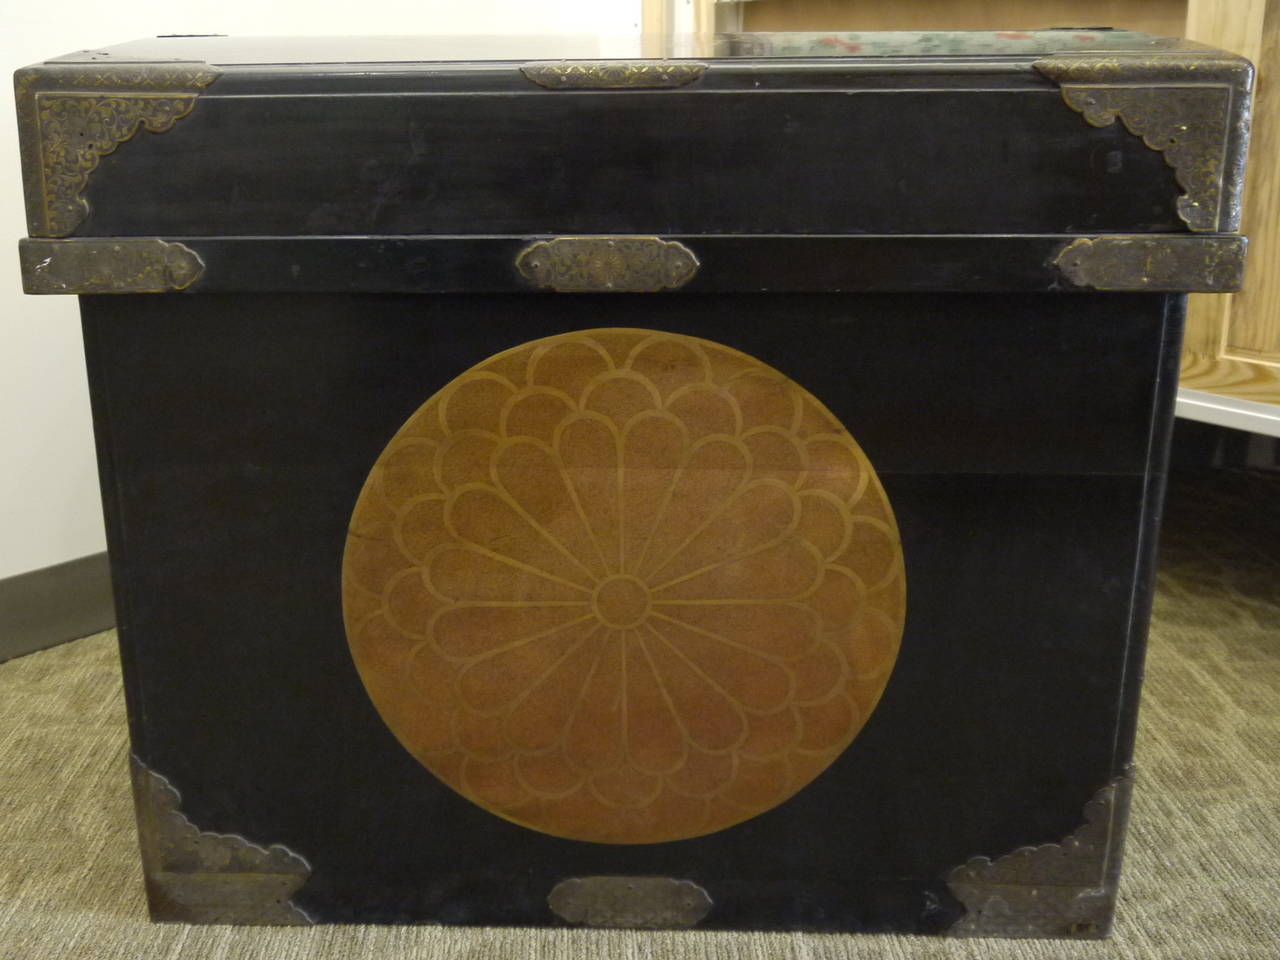 A stunning, decorative and useful antique Japanese storage trunk, with handles, metal hardware and gold crests on all sides.  The lid is removable.  The top has a very slight curve. It is not perfectly flat.